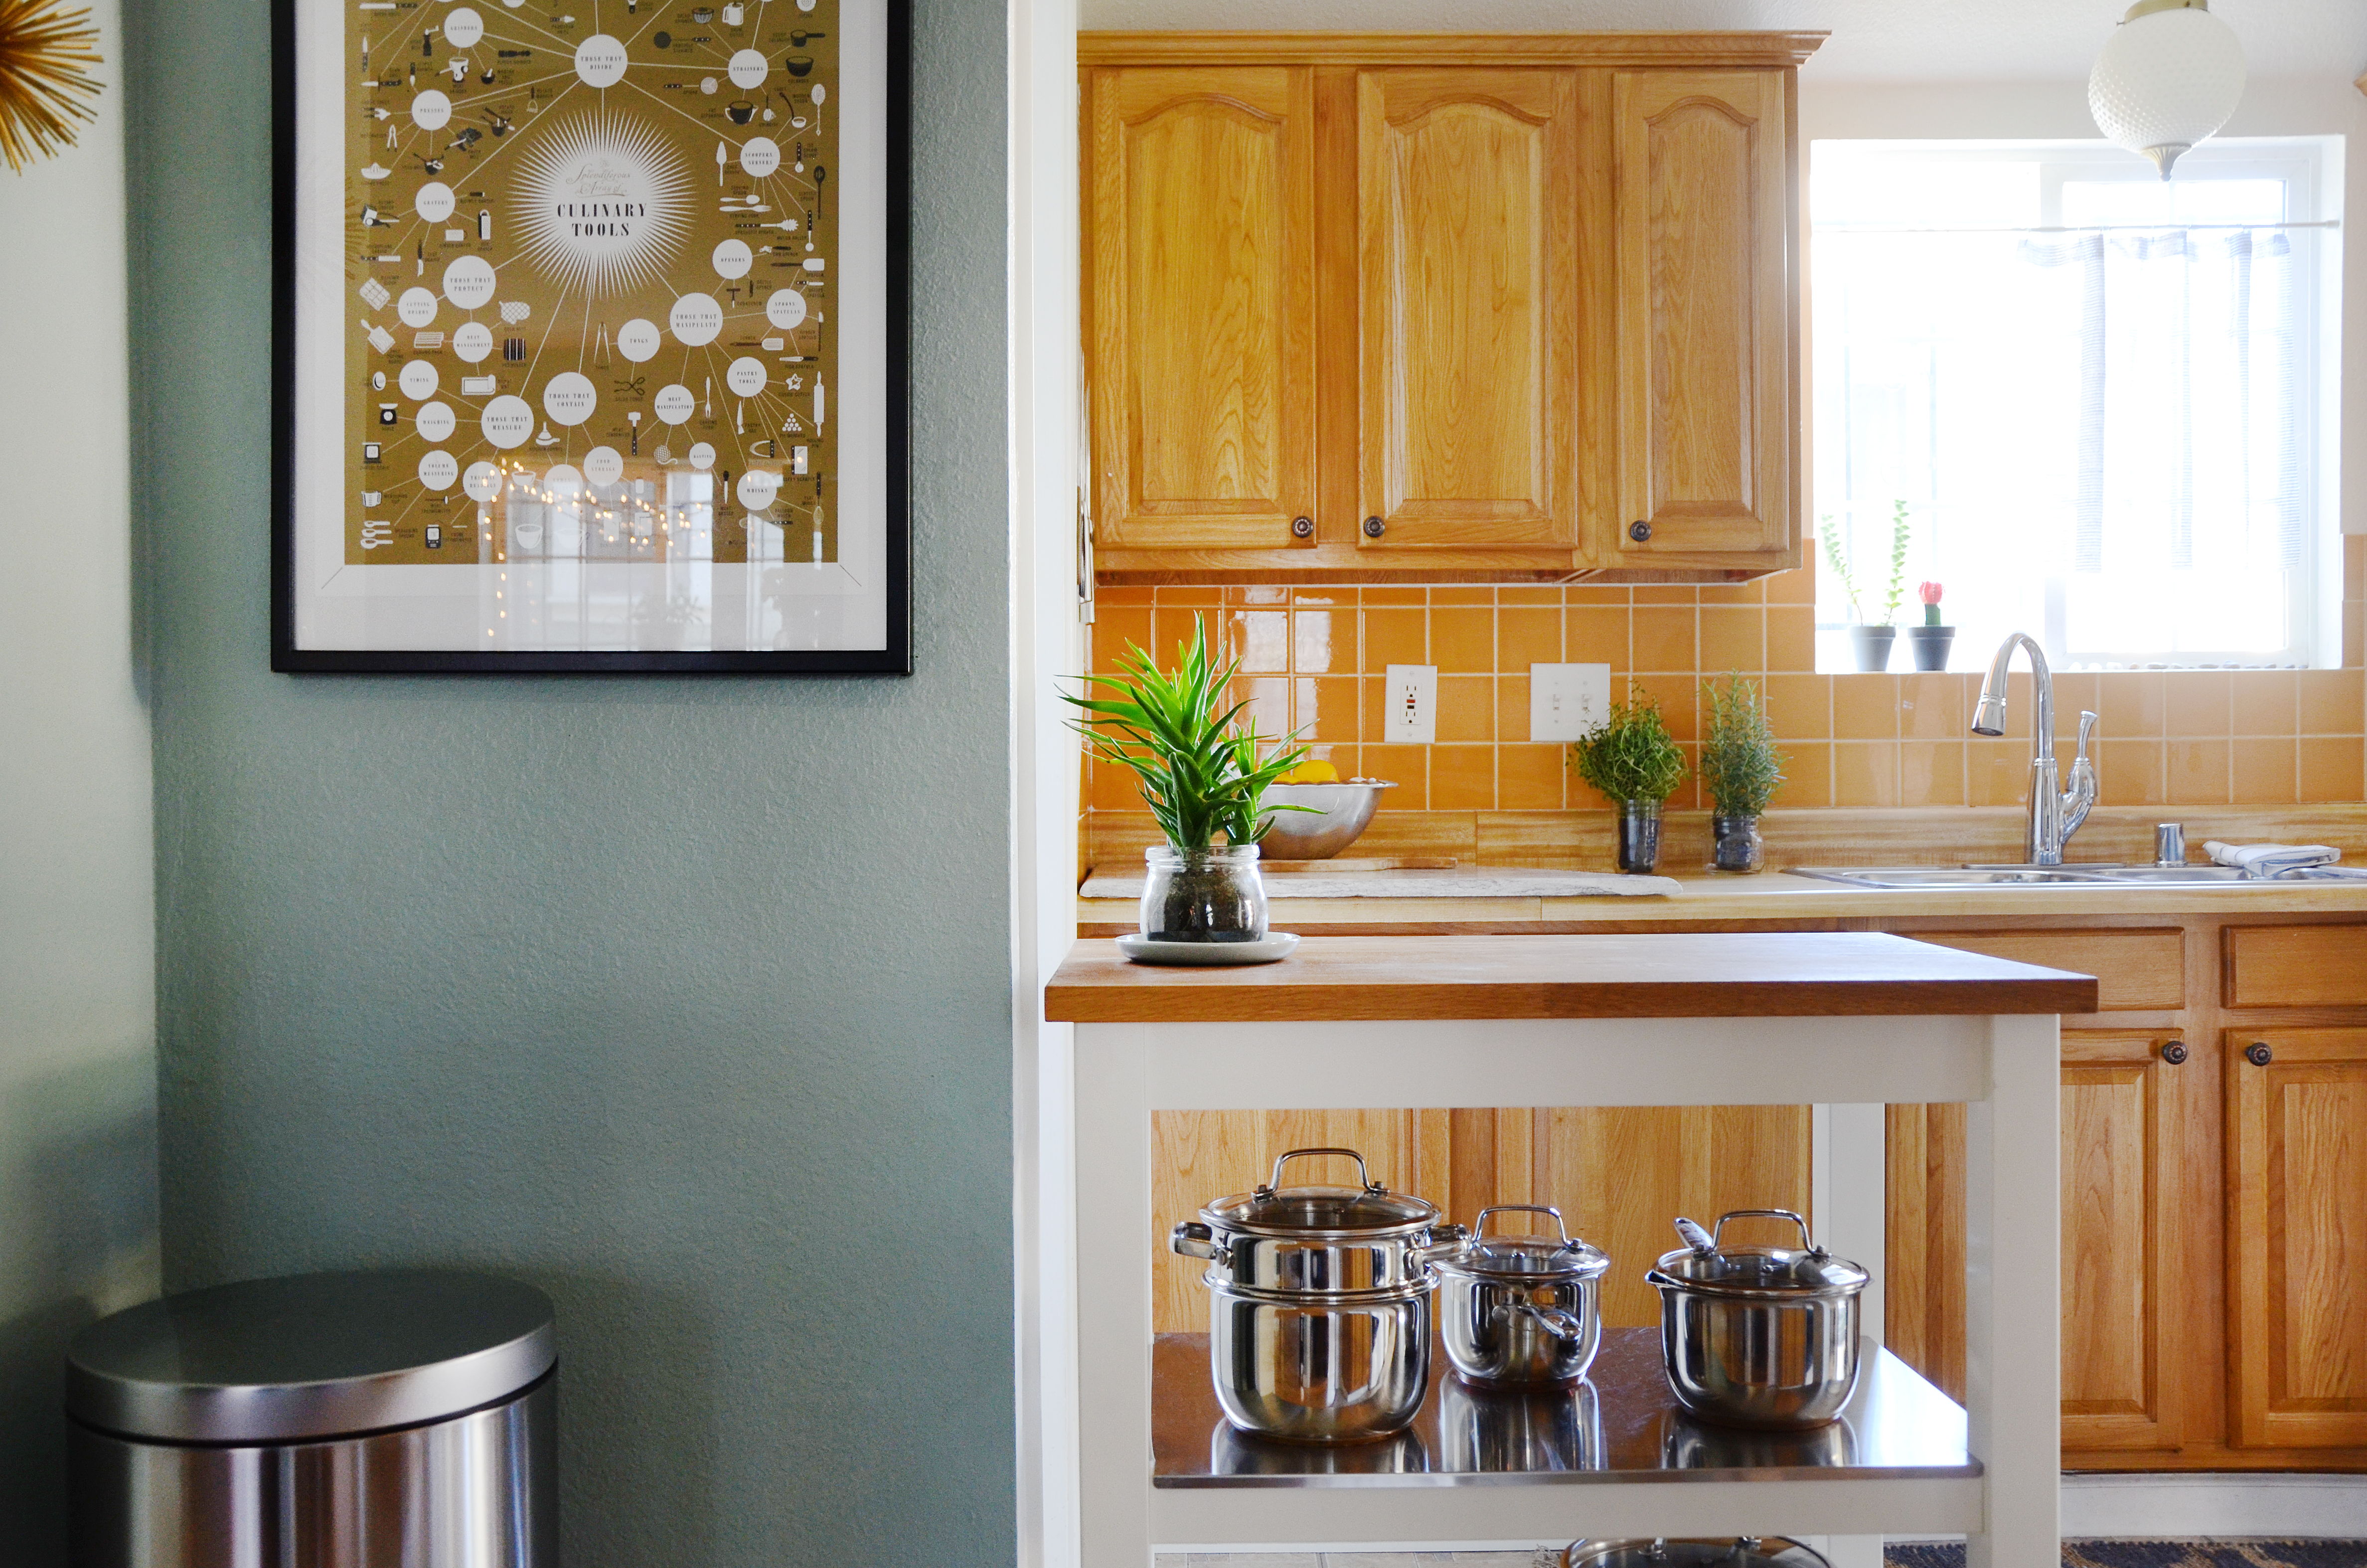 Easy Kitchen Updates - Cheap No Renovation   Apartment Therapy